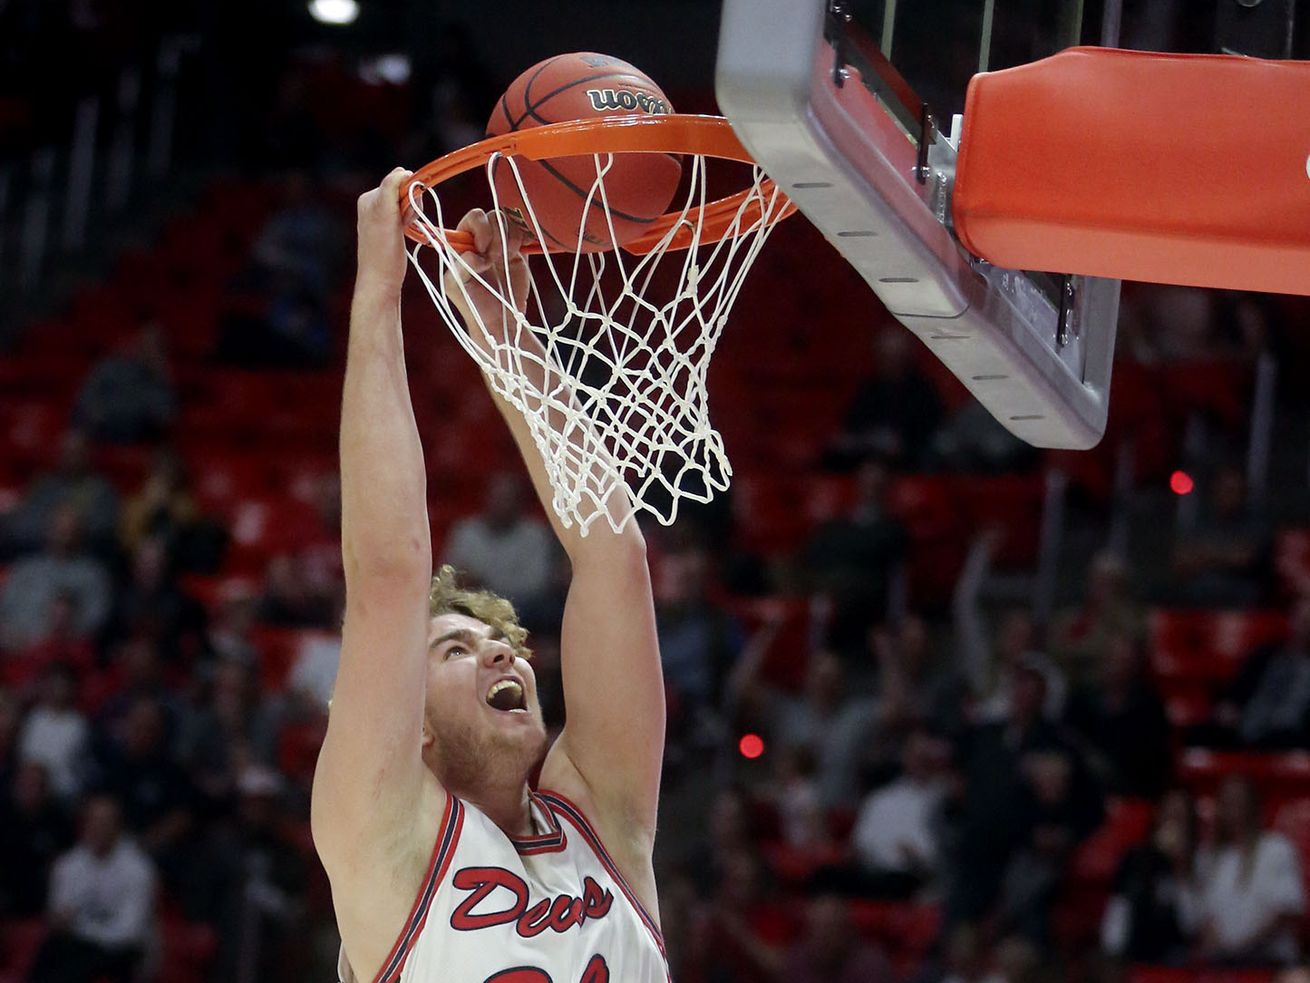 Springville's Zachary Visentin smiles while attempting a dunk right before the ball bounces out during the 5A boys basketball state quarterfinals against Bountiful at the Huntsman Center in Salt Lake City on Tuesday, Feb. 25, 2020. Springville won 65-60.